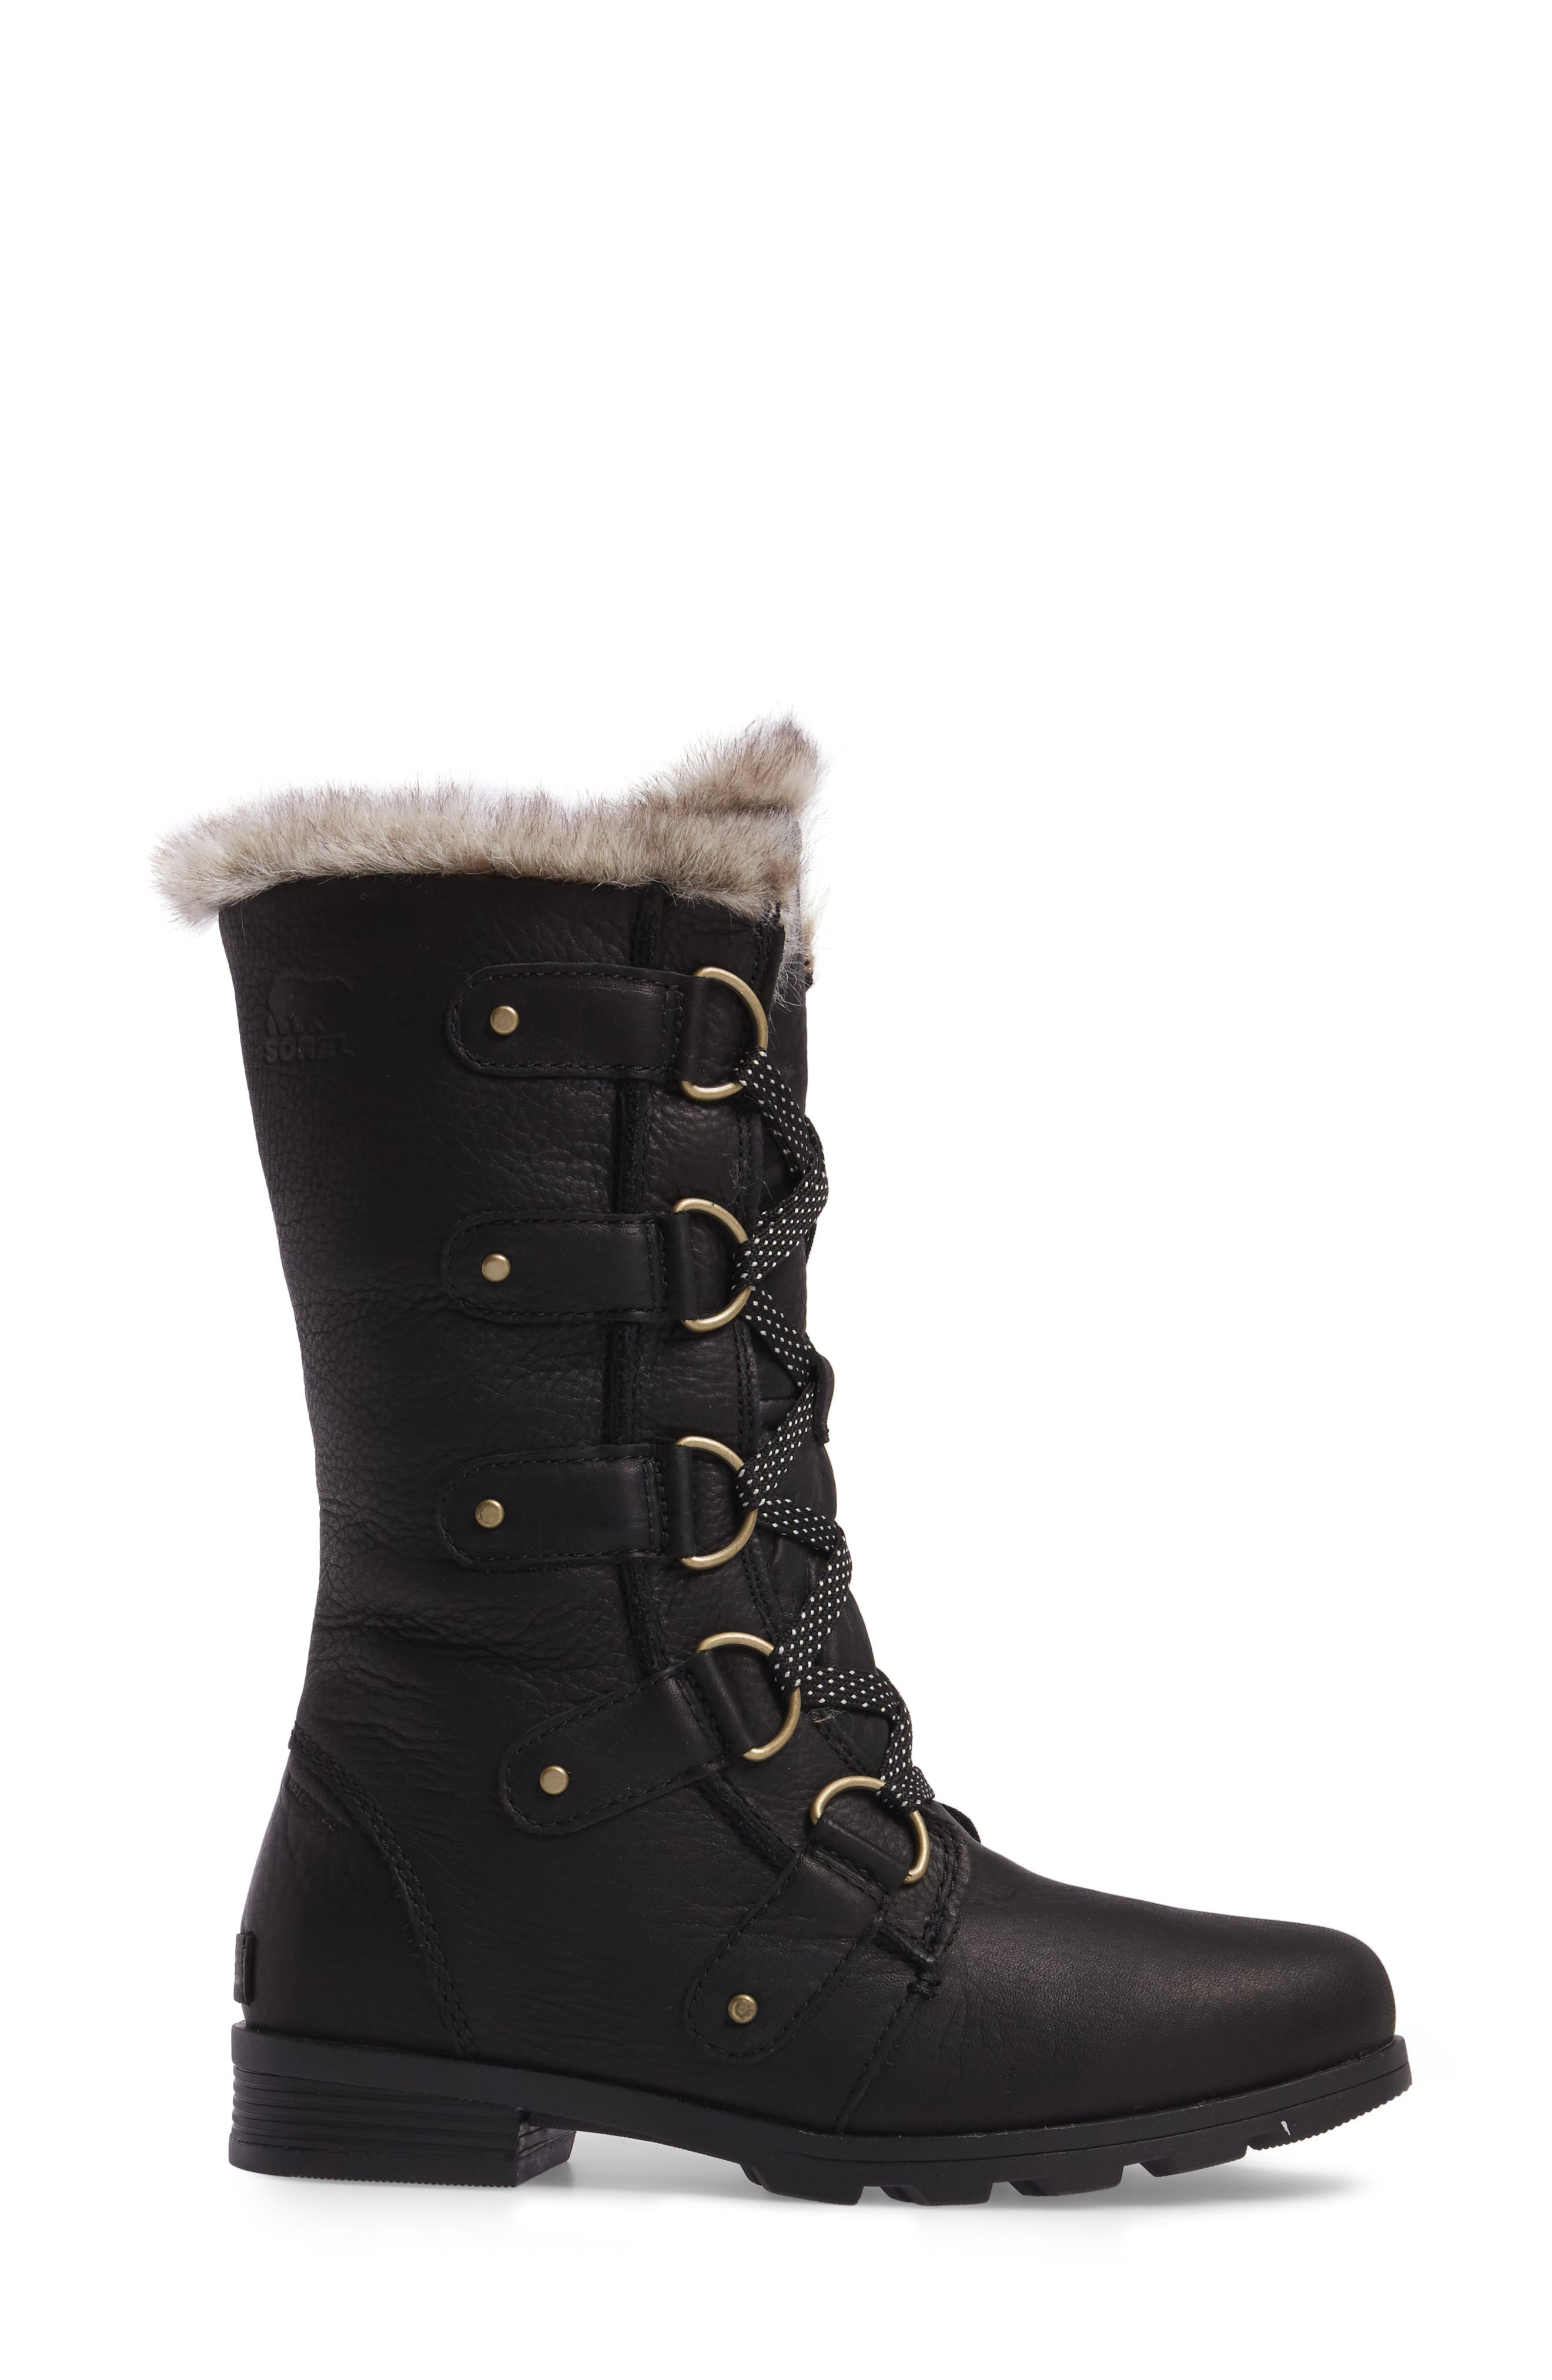 Alternate Image 3  - SOREL Emelie Waterproof Lace Up Boot with Faux Fur Trim (Women)